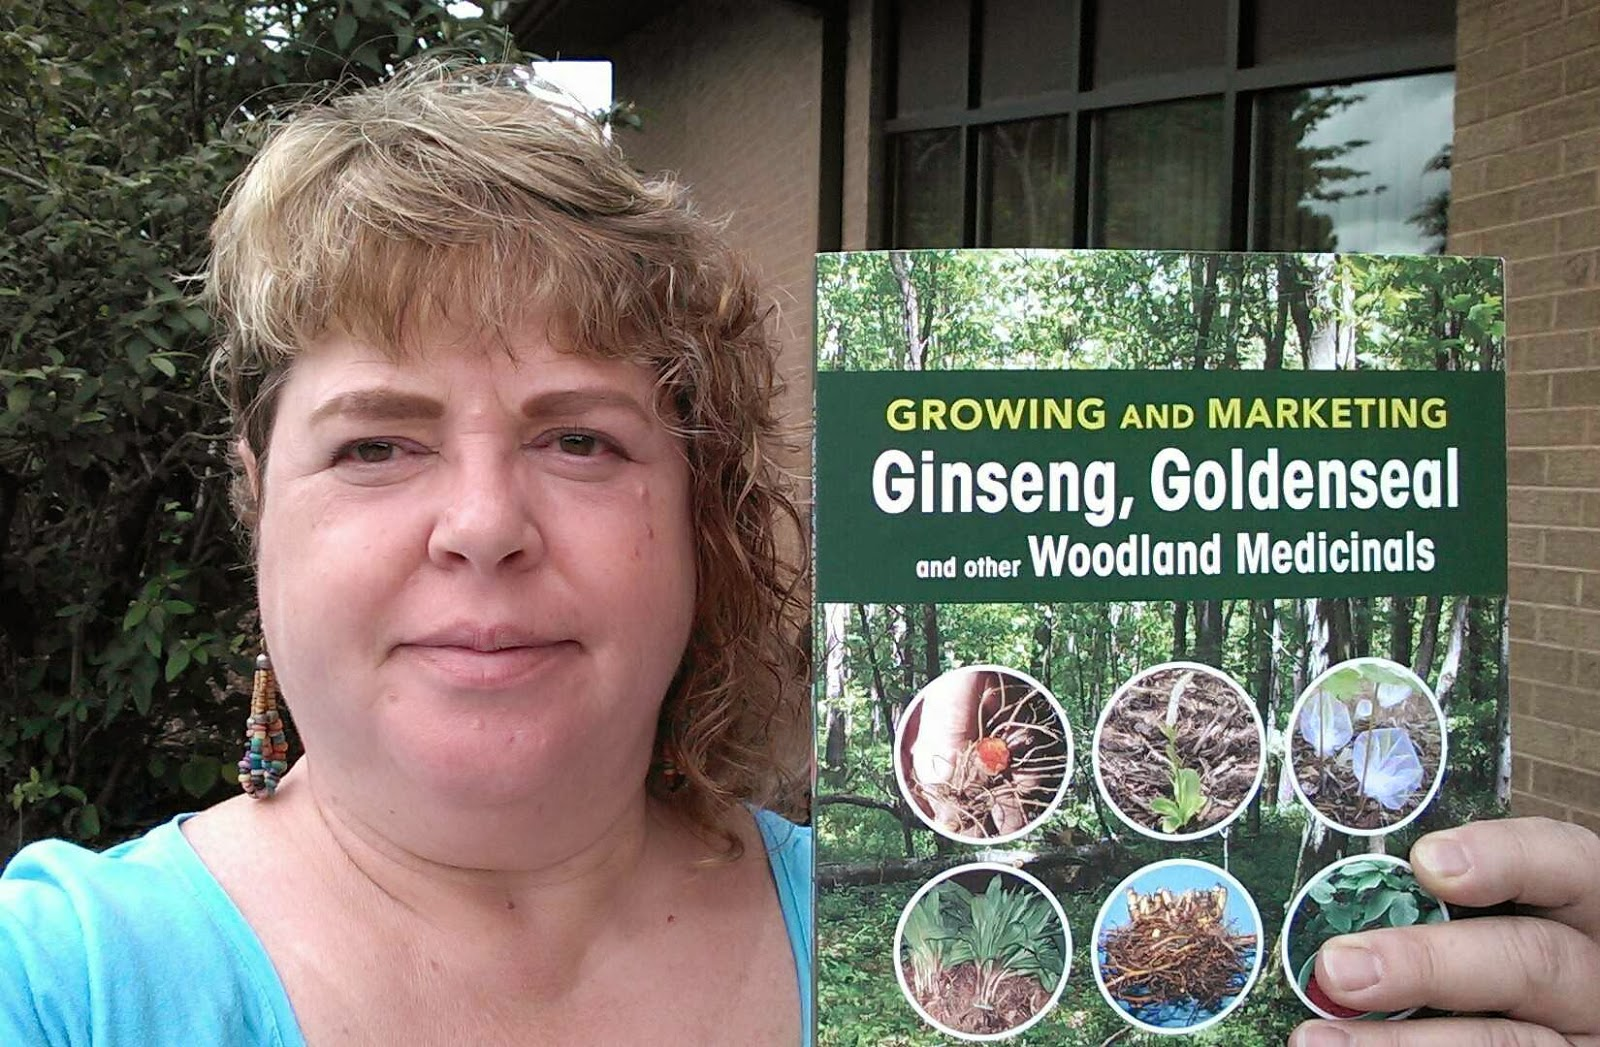 Growing and Marketing Ginseng Goldenseal and Other Woodland Medicinals book